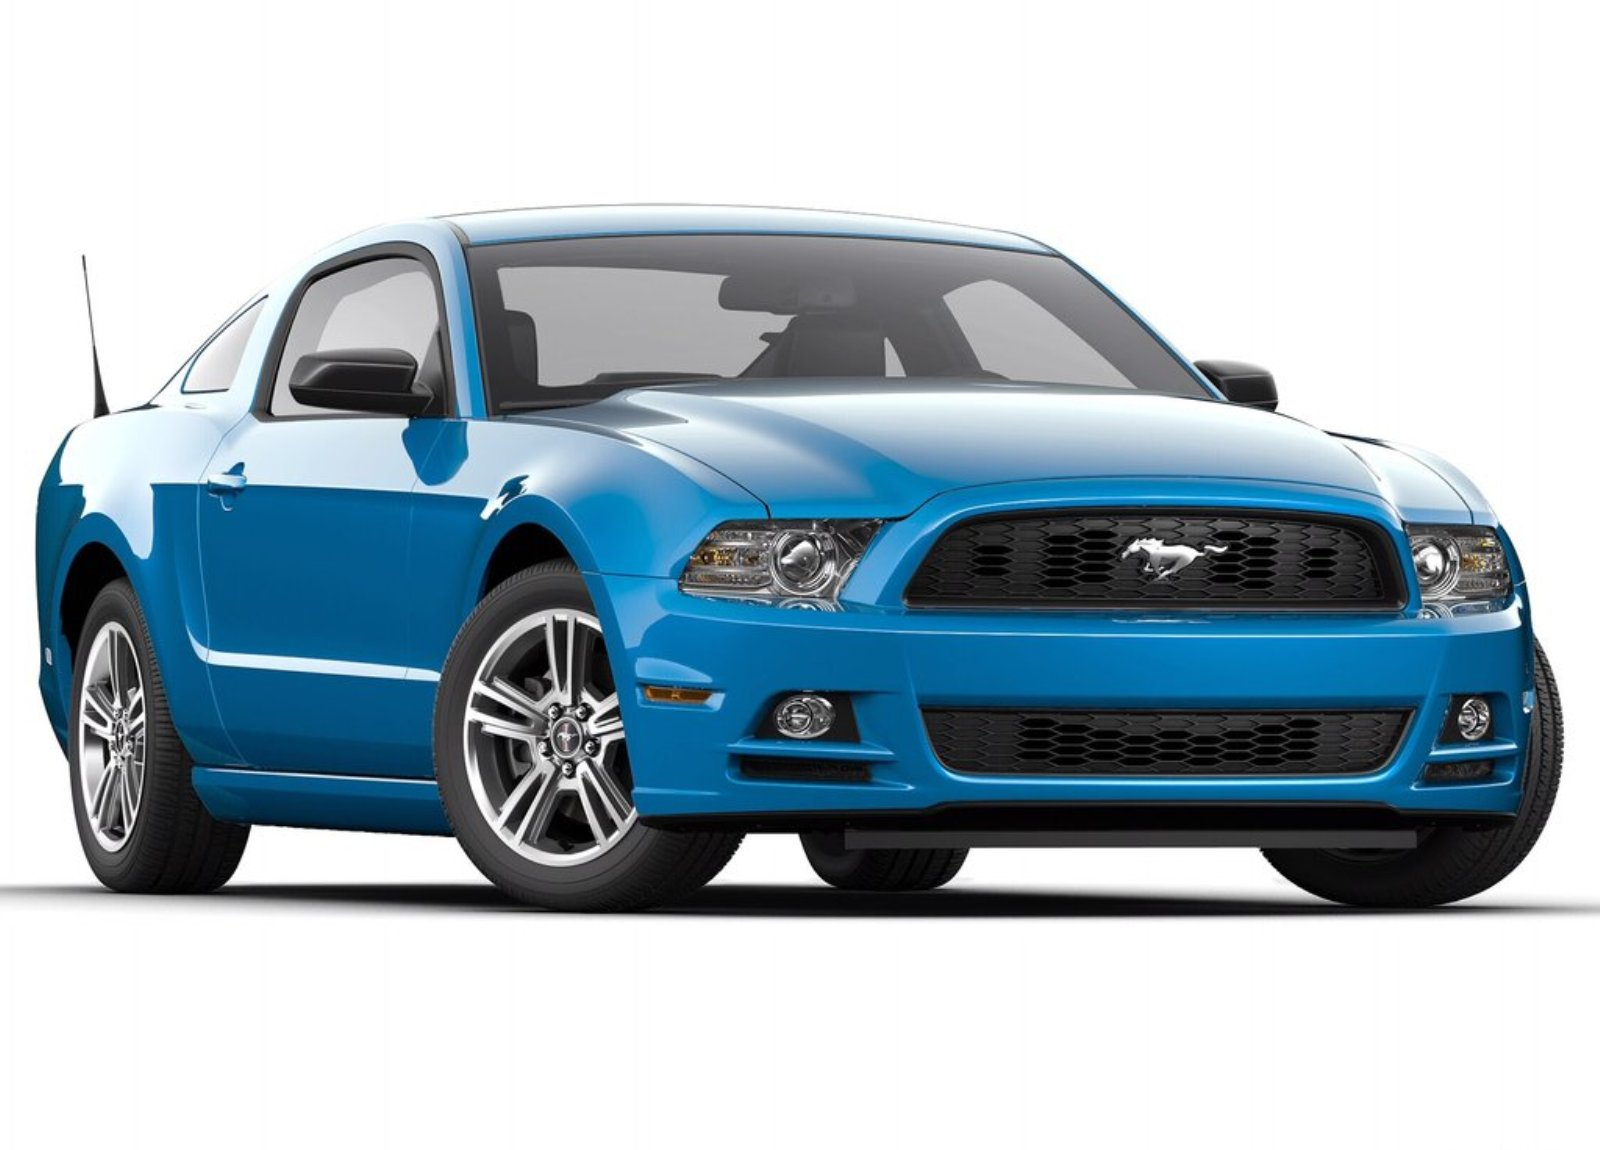 2013 Ford Mustang #15